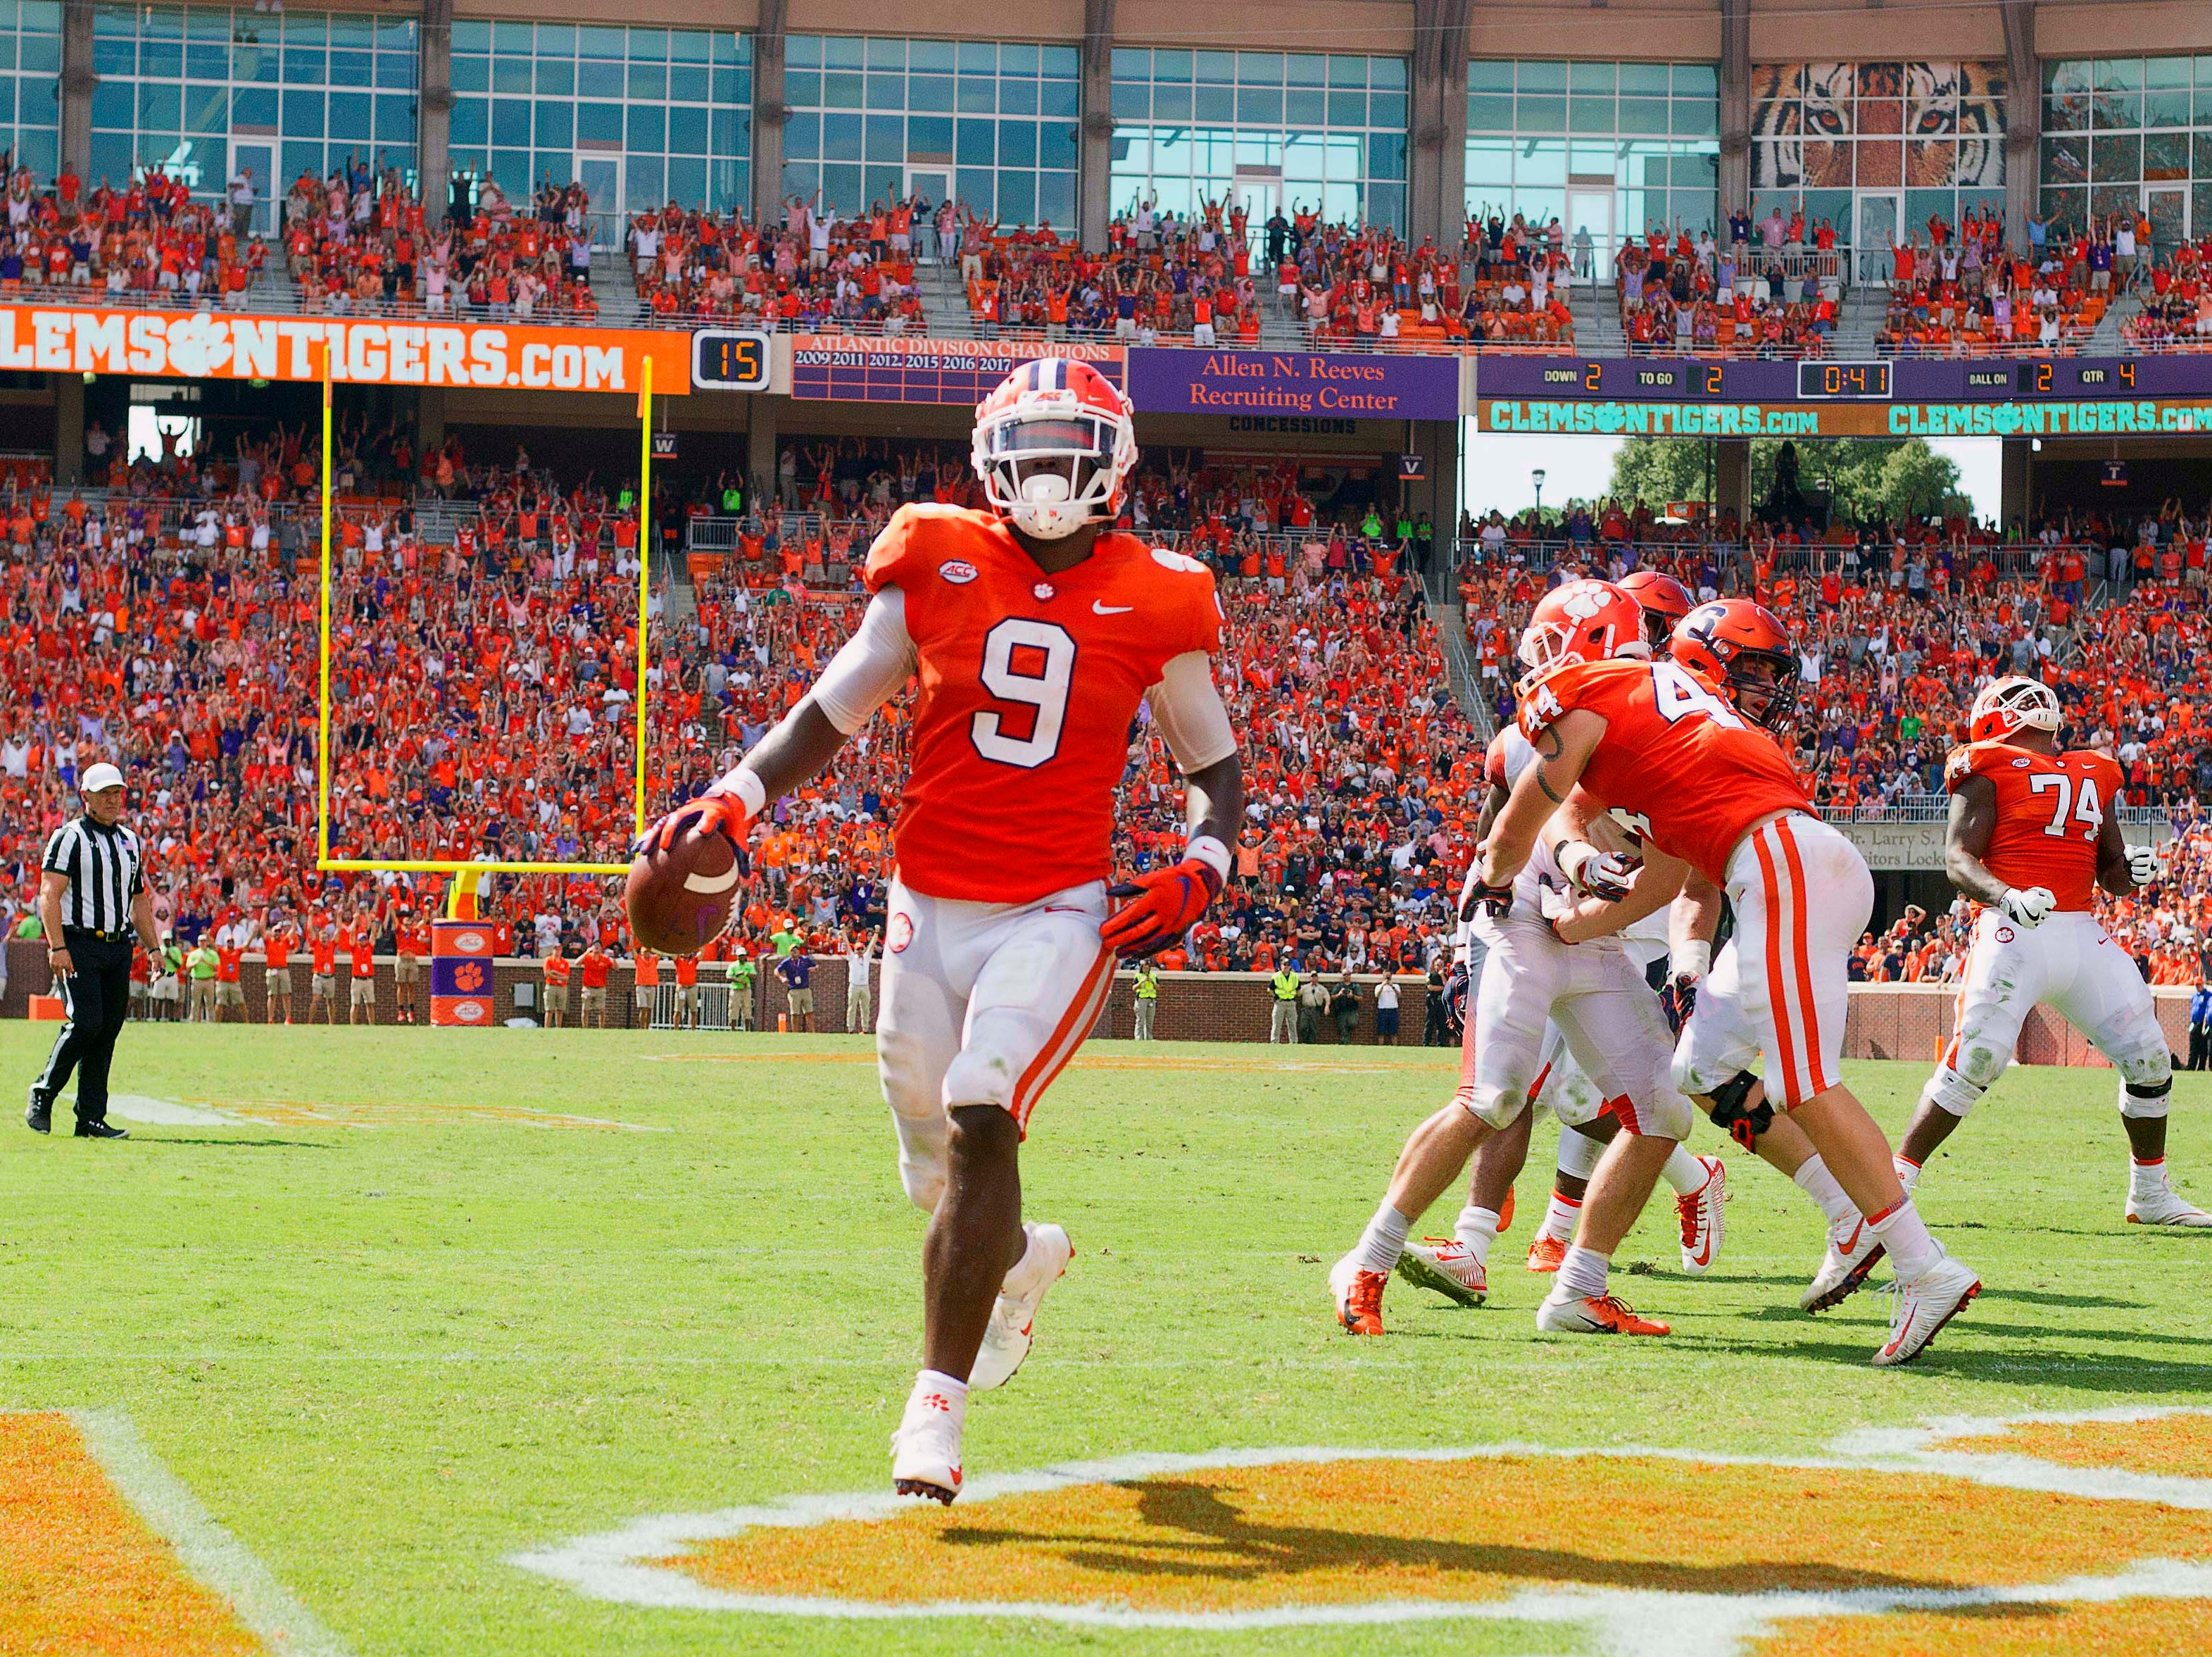 Clemson Tigers running back Travis Etienne (9) scores a touchdown during the second half against the Syracuse Orange at Clemson Memorial Stadium.